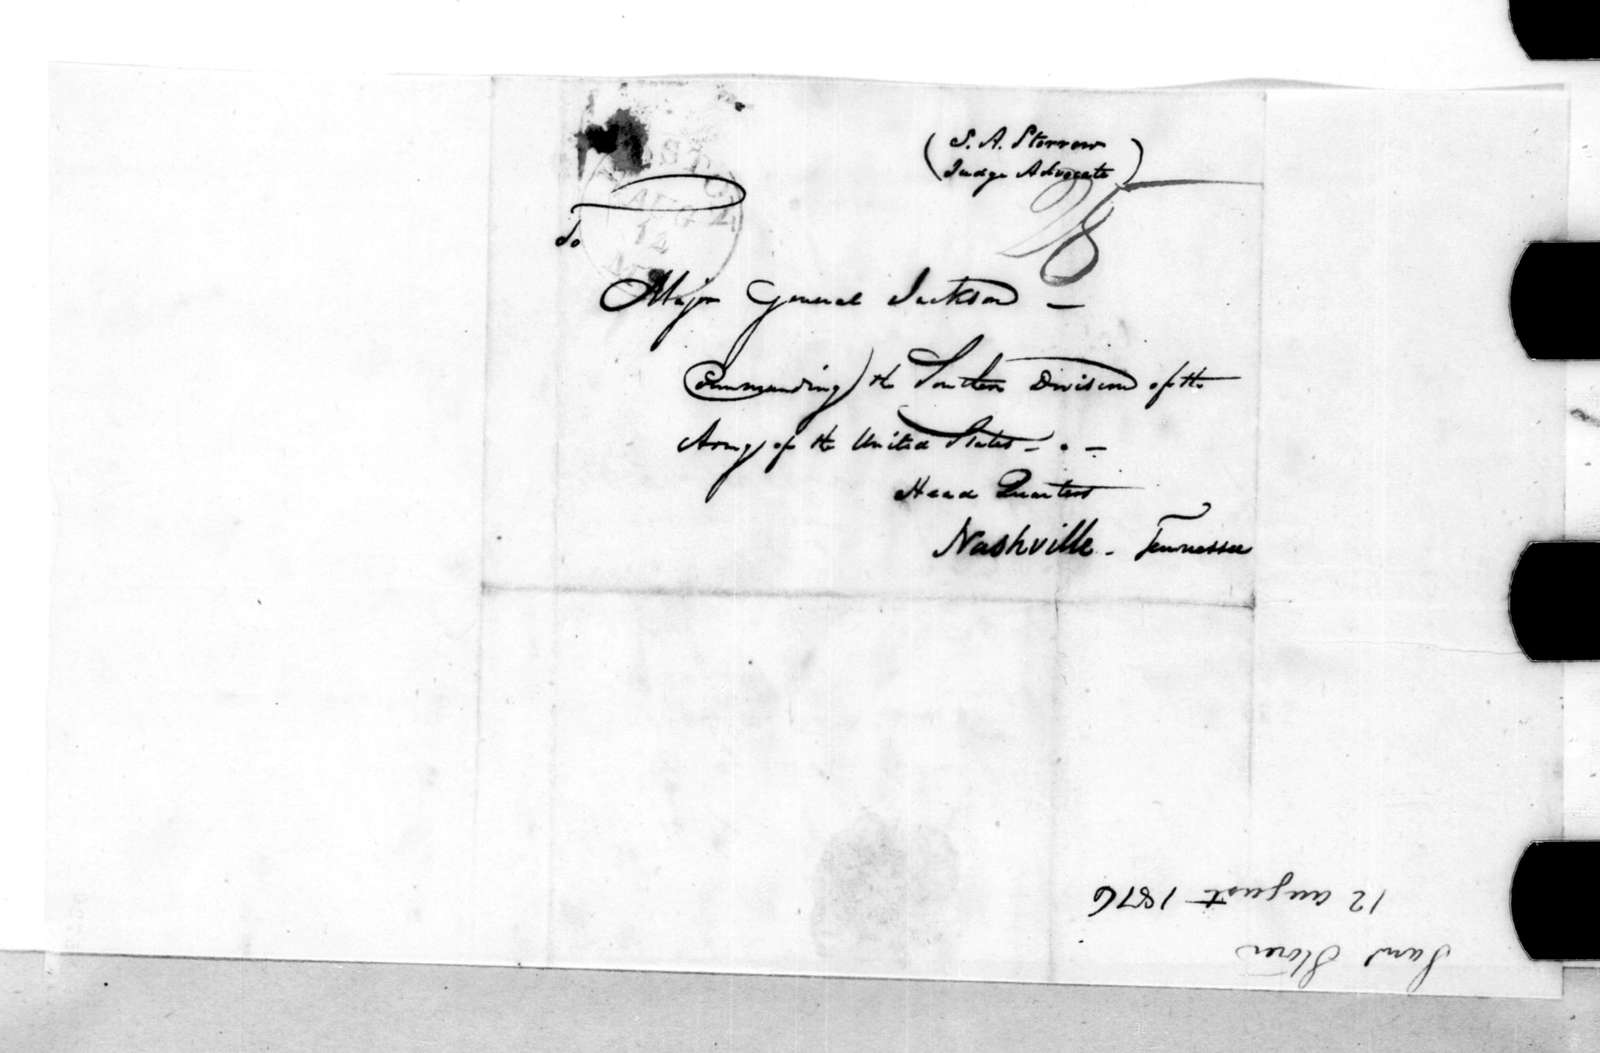 Samuel A. Storrow to Andrew Jackson, August 12, 1816